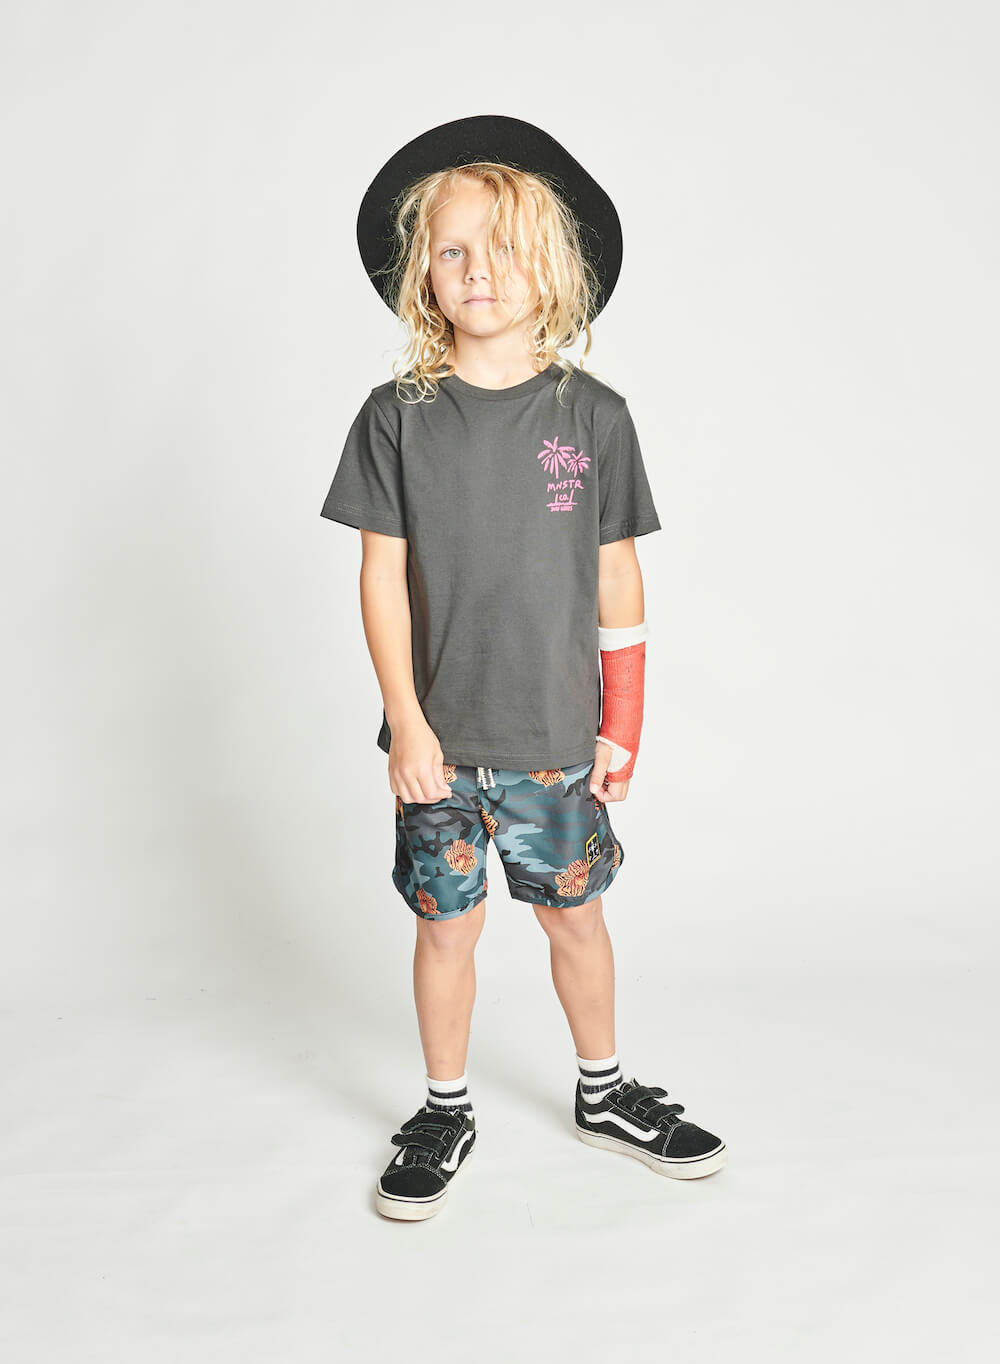 Munster Floralamo Boardshort | Tiny People Shop